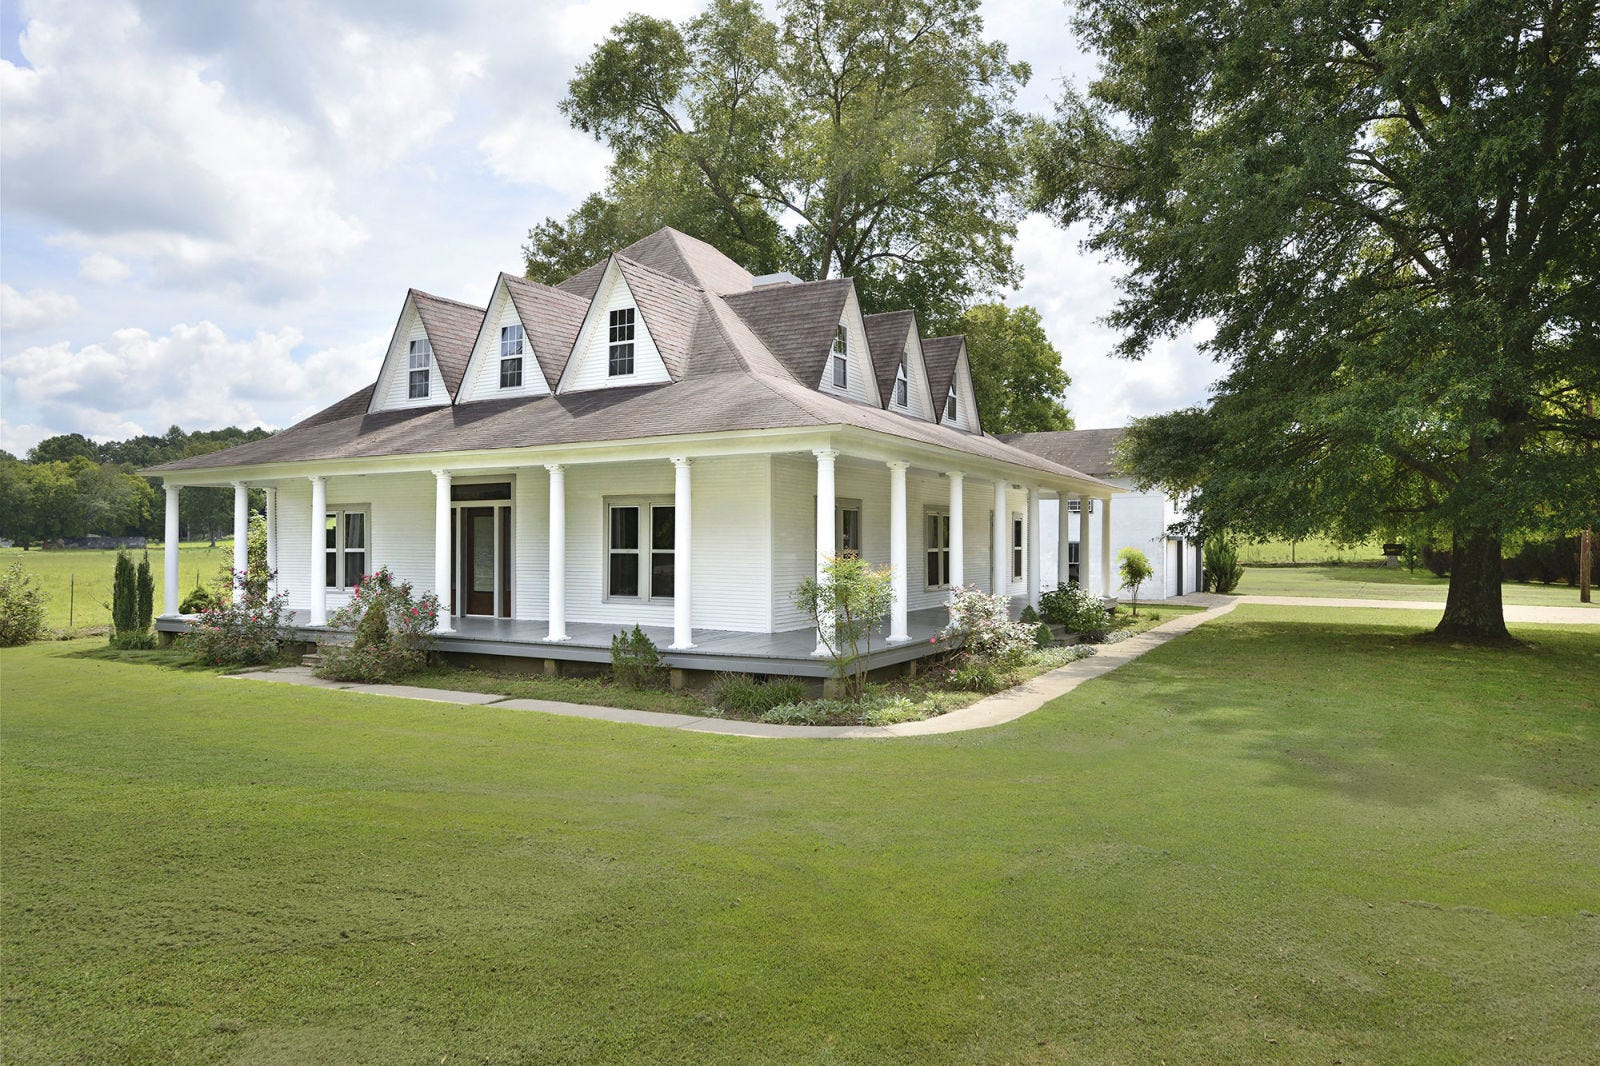 Property, House, Land lot, Real estate, Home, Building, Roof, Residential area, Lawn, Garden,